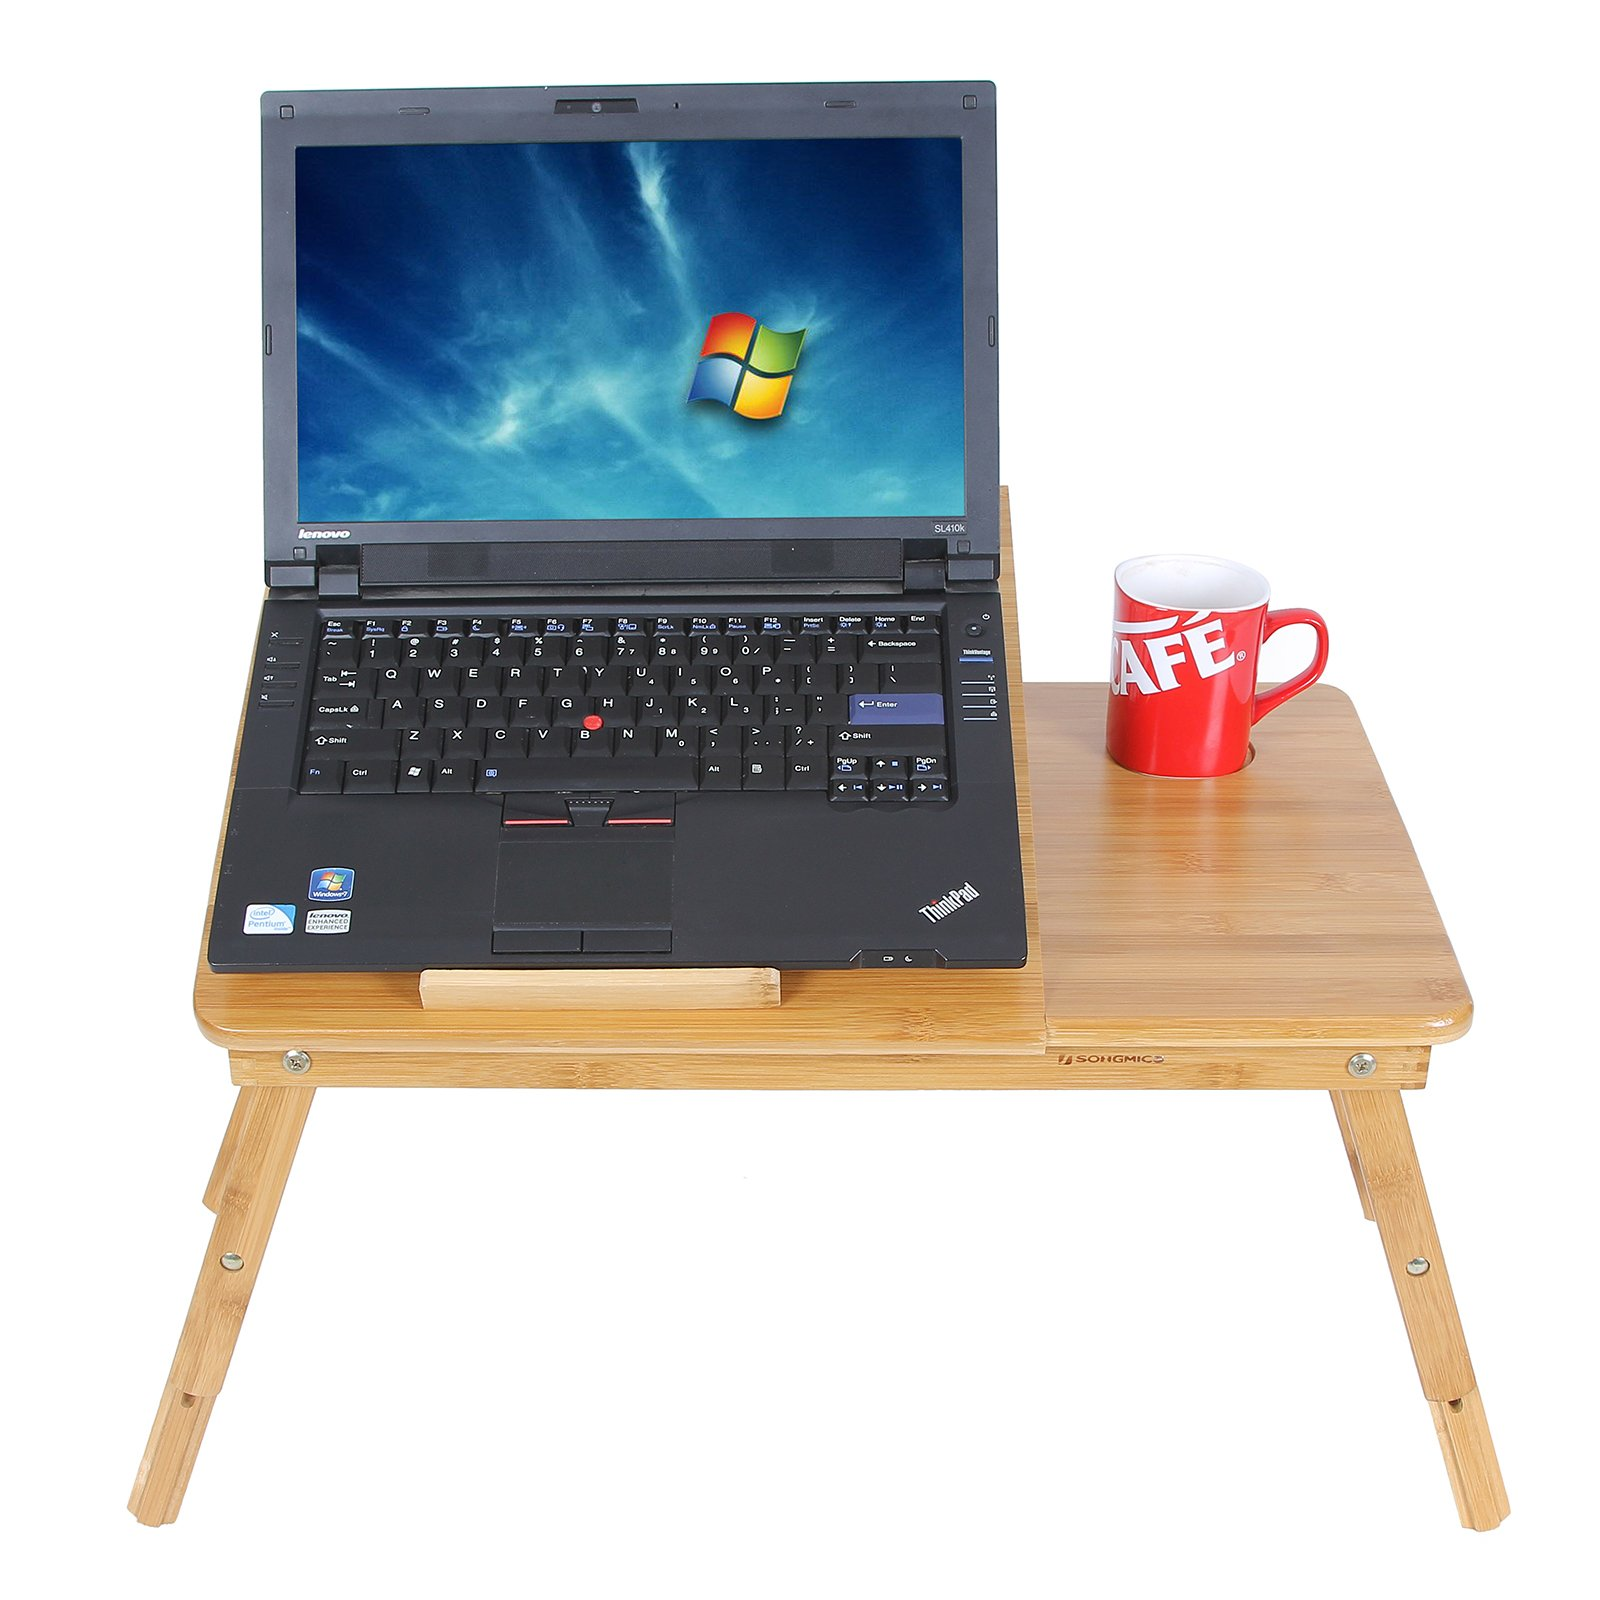 SONGMICS Bamboo Laptop Desk Serving Bed Tray Tilting Top ULLD001 by SONGMICS (Image #3)